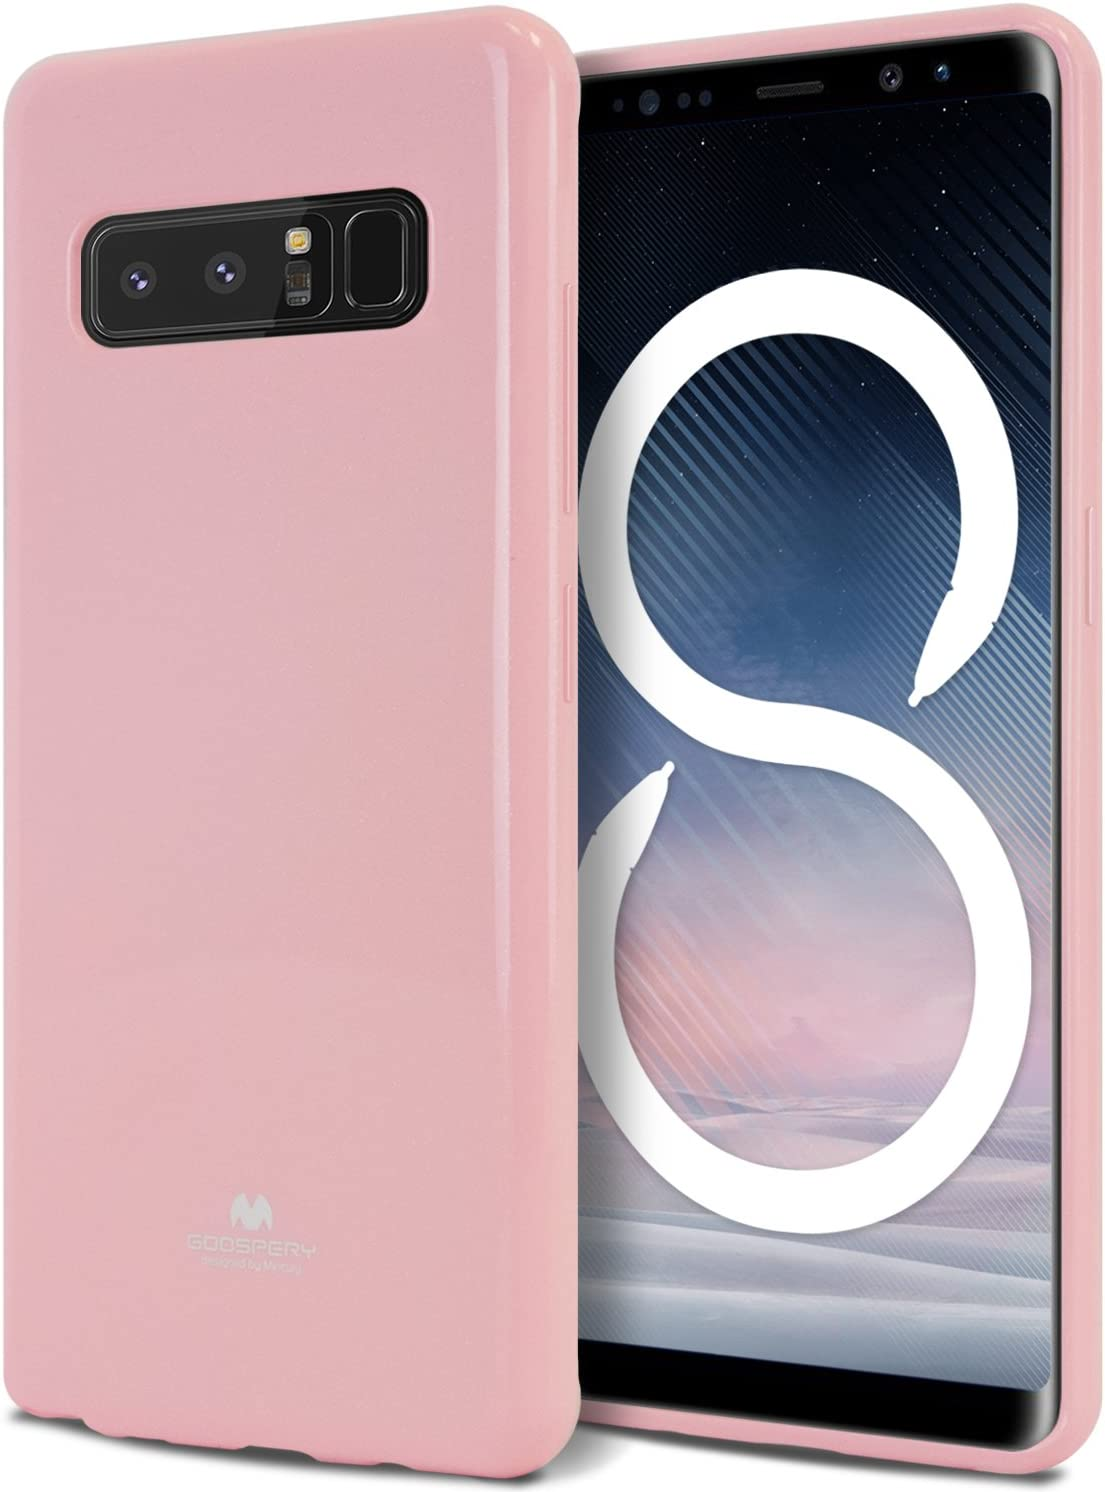 Goospery Pearl Jelly for Samsung Galaxy Note 8 Case (2017) Slim Thin Rubber Case (Pink) NT8-JEL-PNK